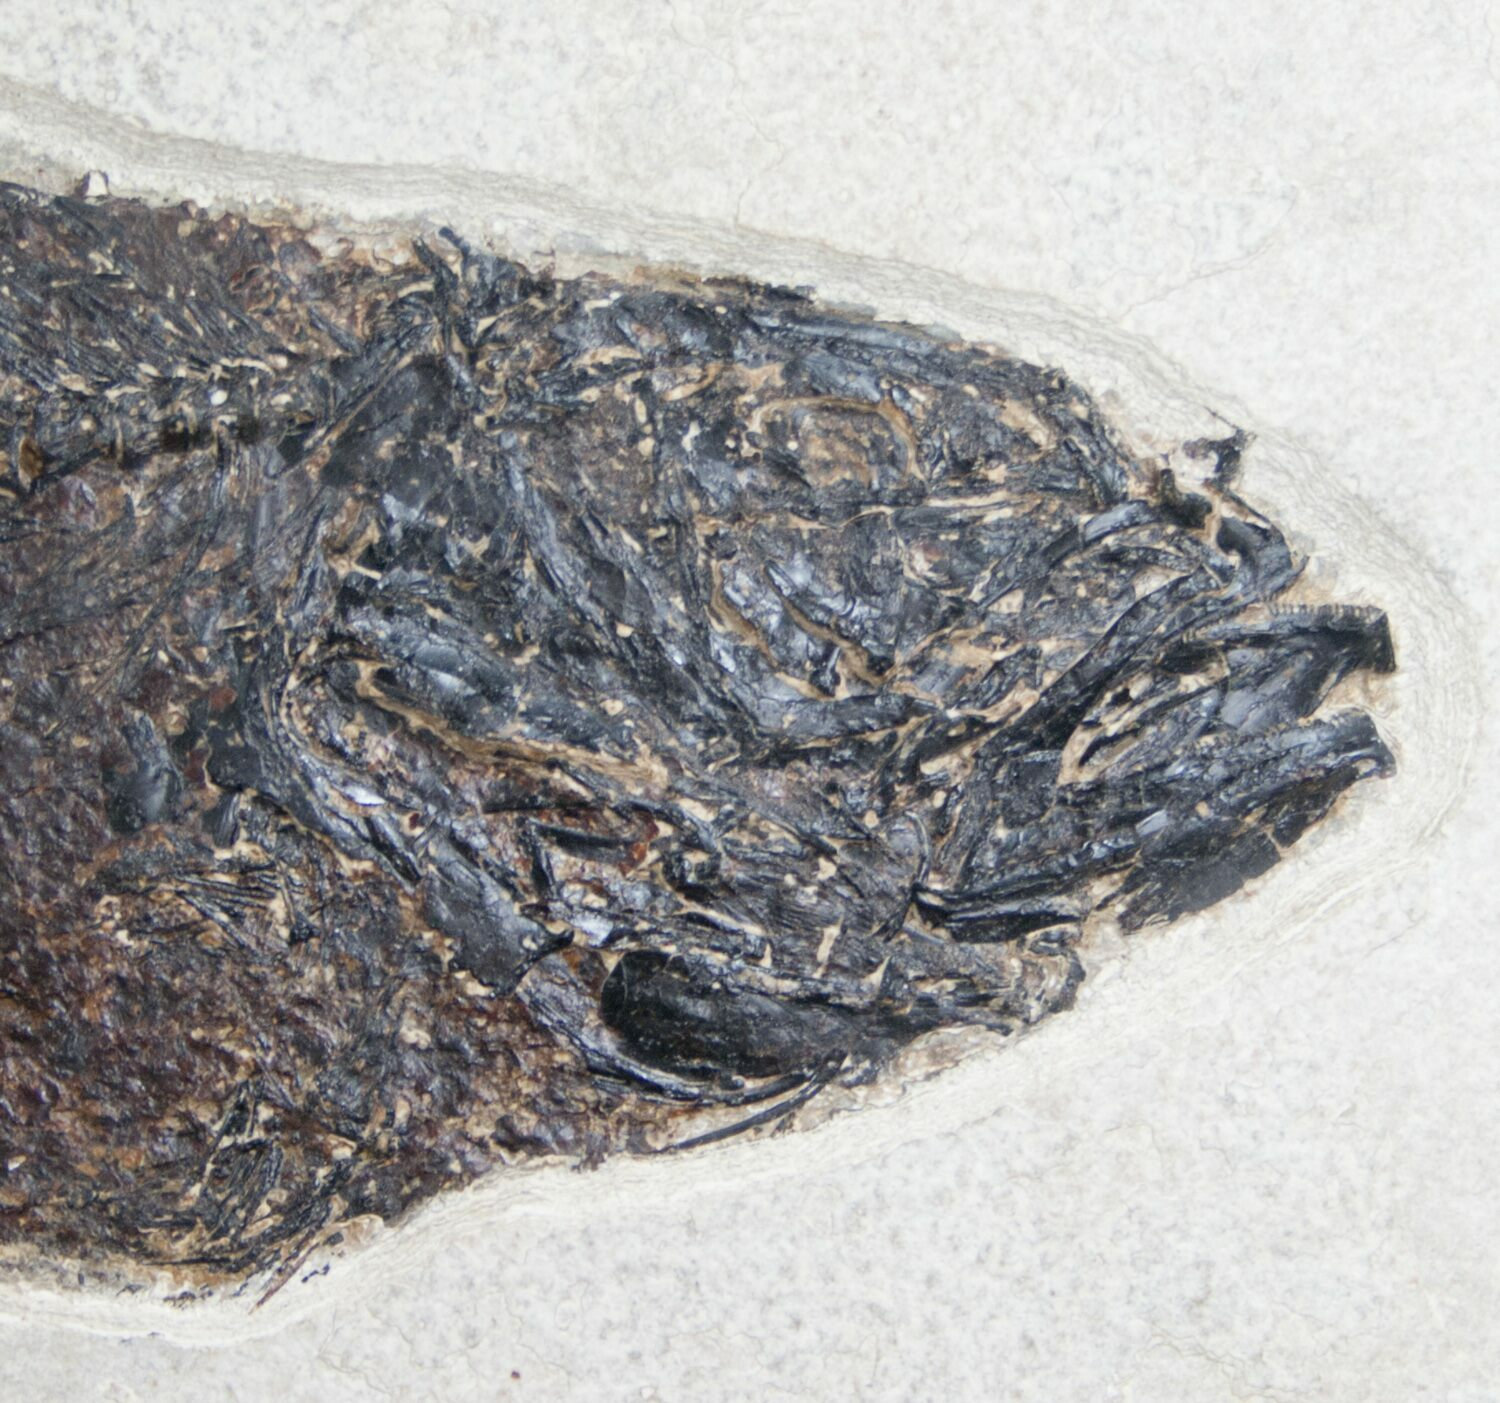 12 mioplosus fish fossil from 18 inch layer for sale for Fish fossils for sale